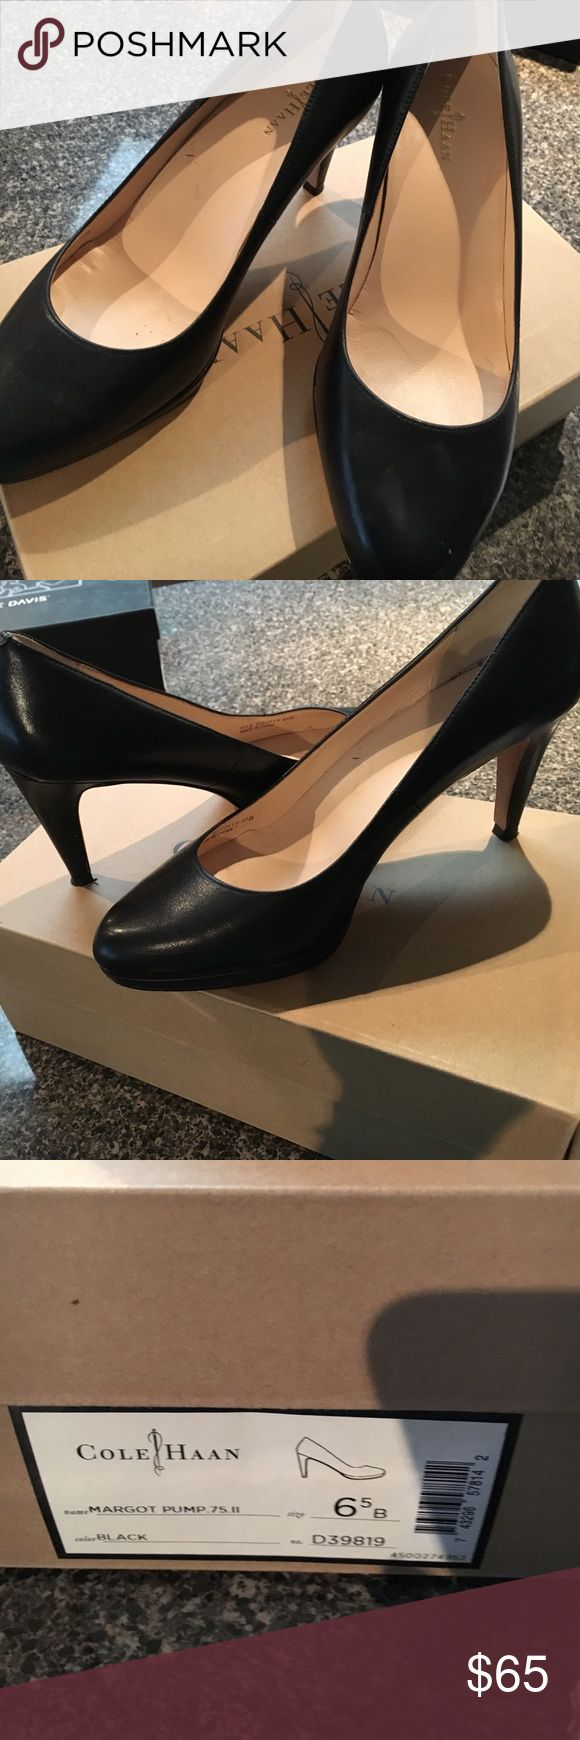 Cole Haan Margit Pumps 7 Cole Haan Margot Pumps. Size 7. Comes with box. Worn one for 2 hours. Purchased at the Cole Haan Outlet. Cole Haan Shoes Heels